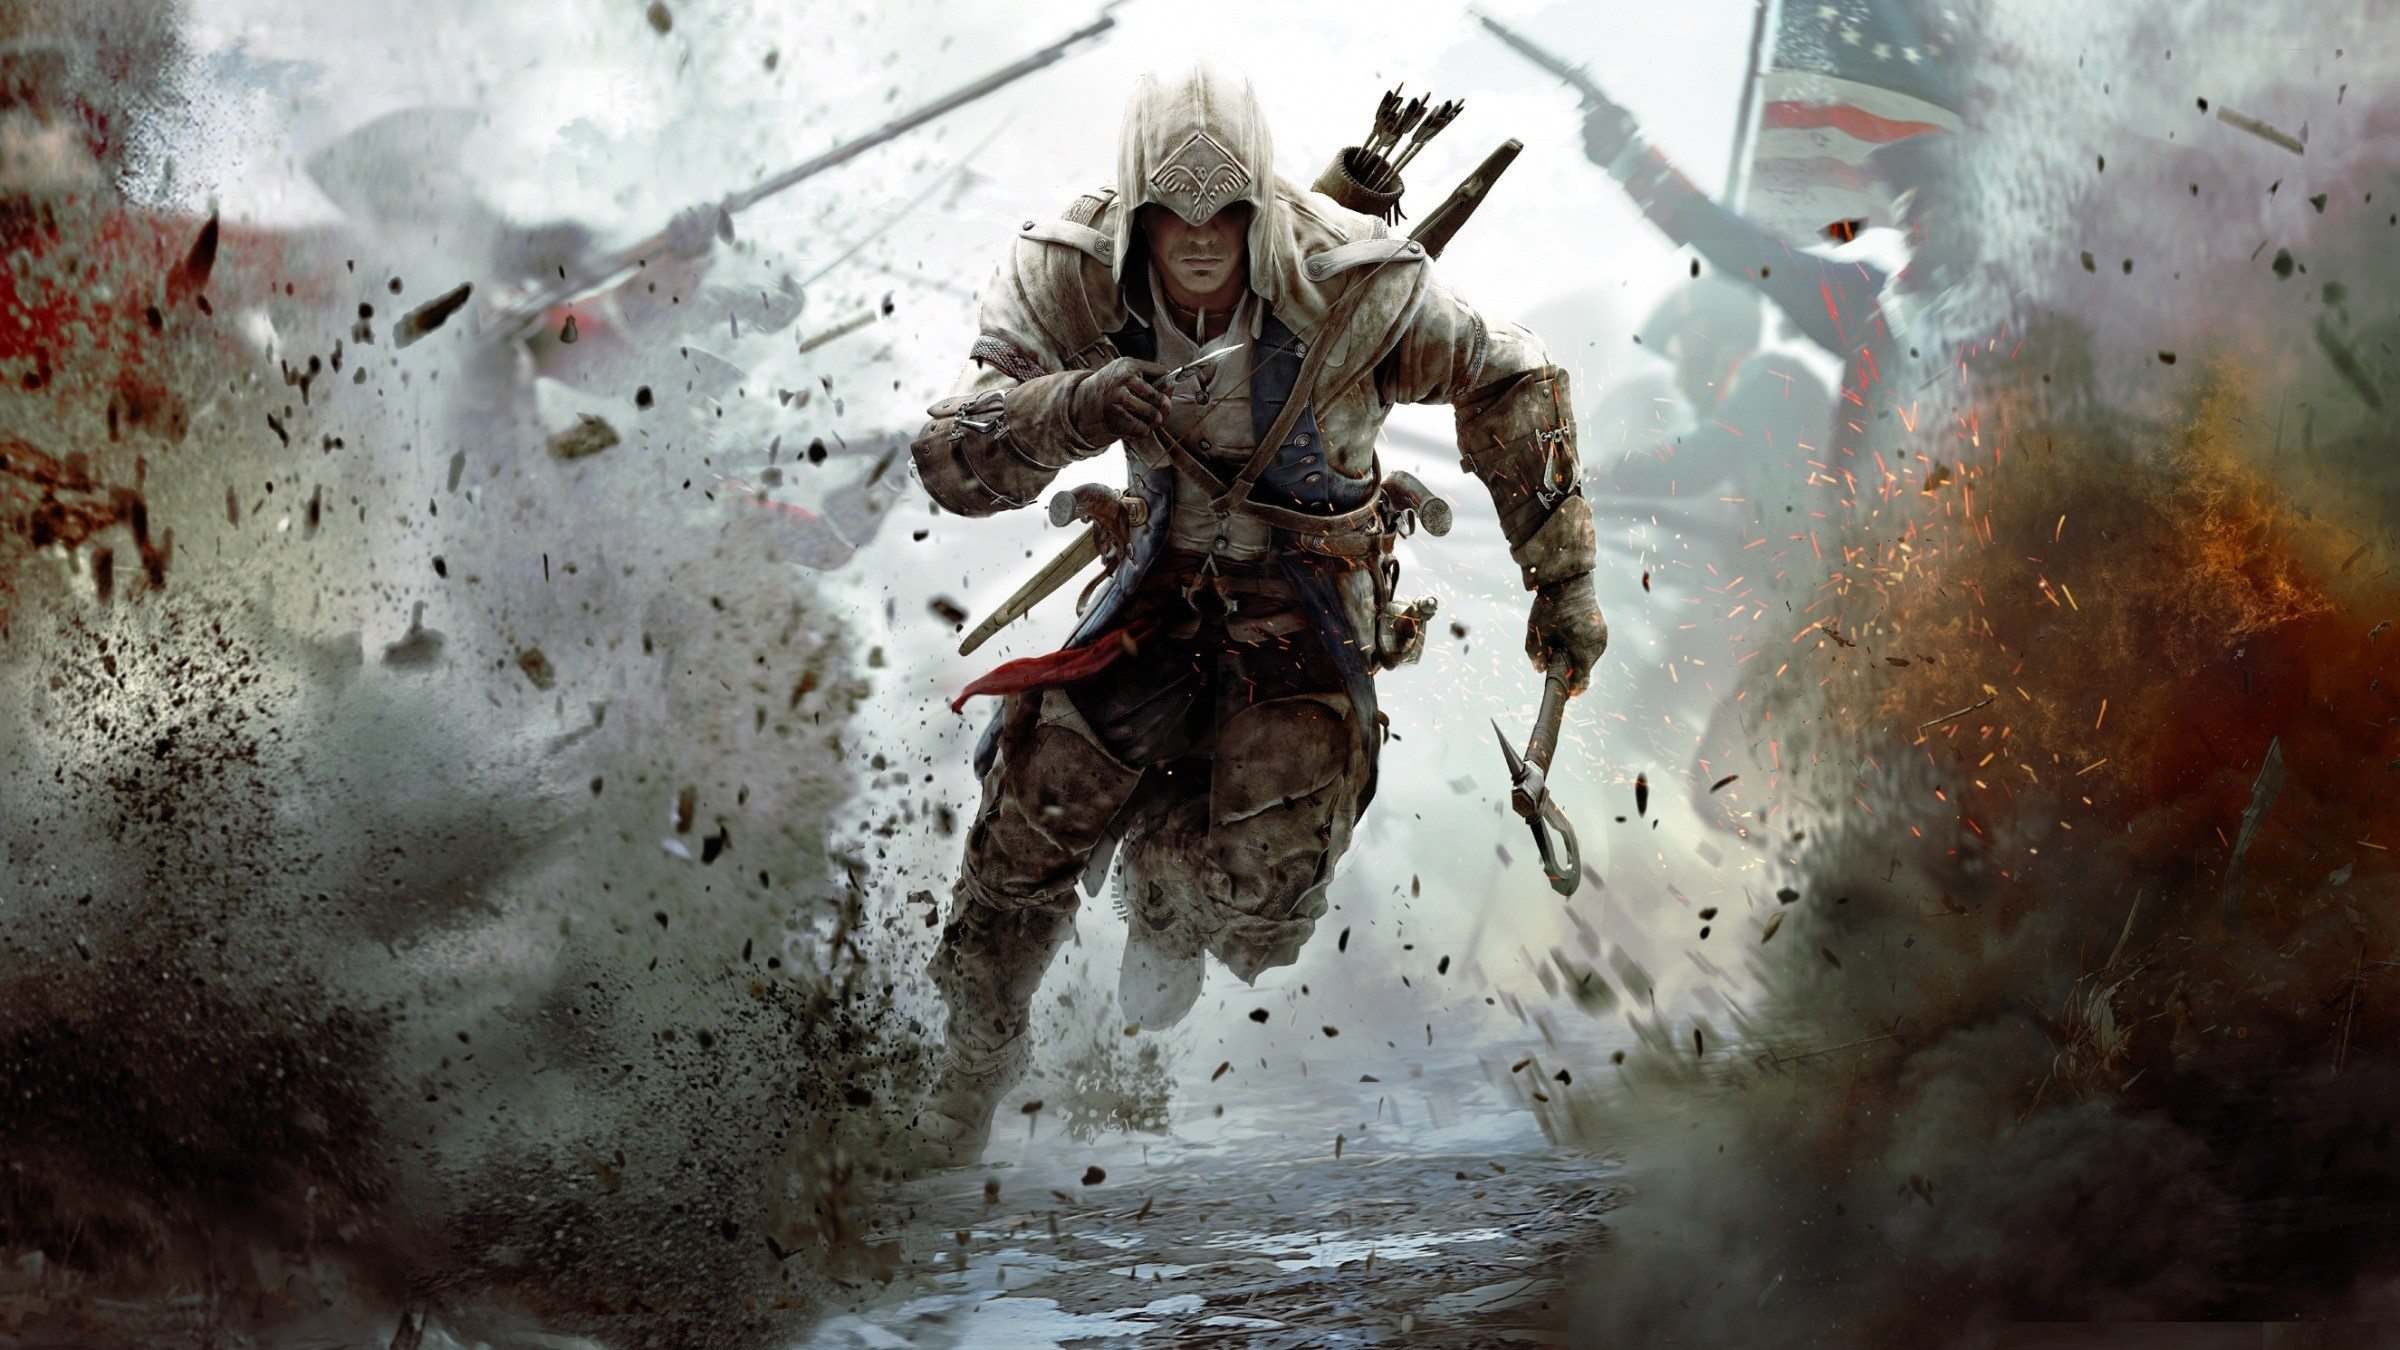 hd game wallpapers 1080p widescreen Free Games wallpapers 1080p HD High  Resolution- Powered by ActivatedGames